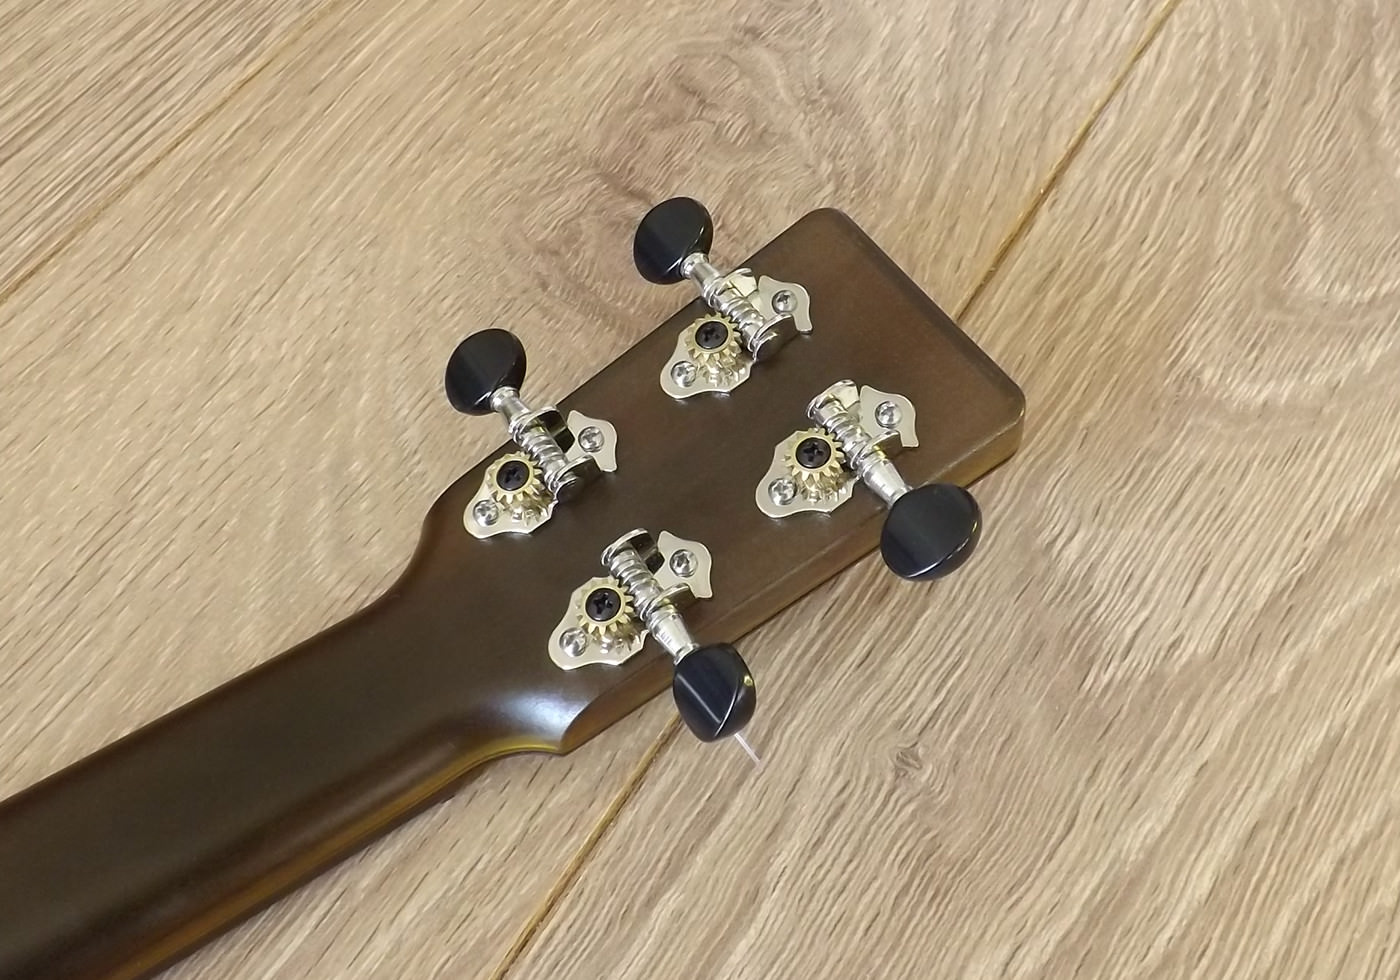 outdoor tenor ukulele grover tuners